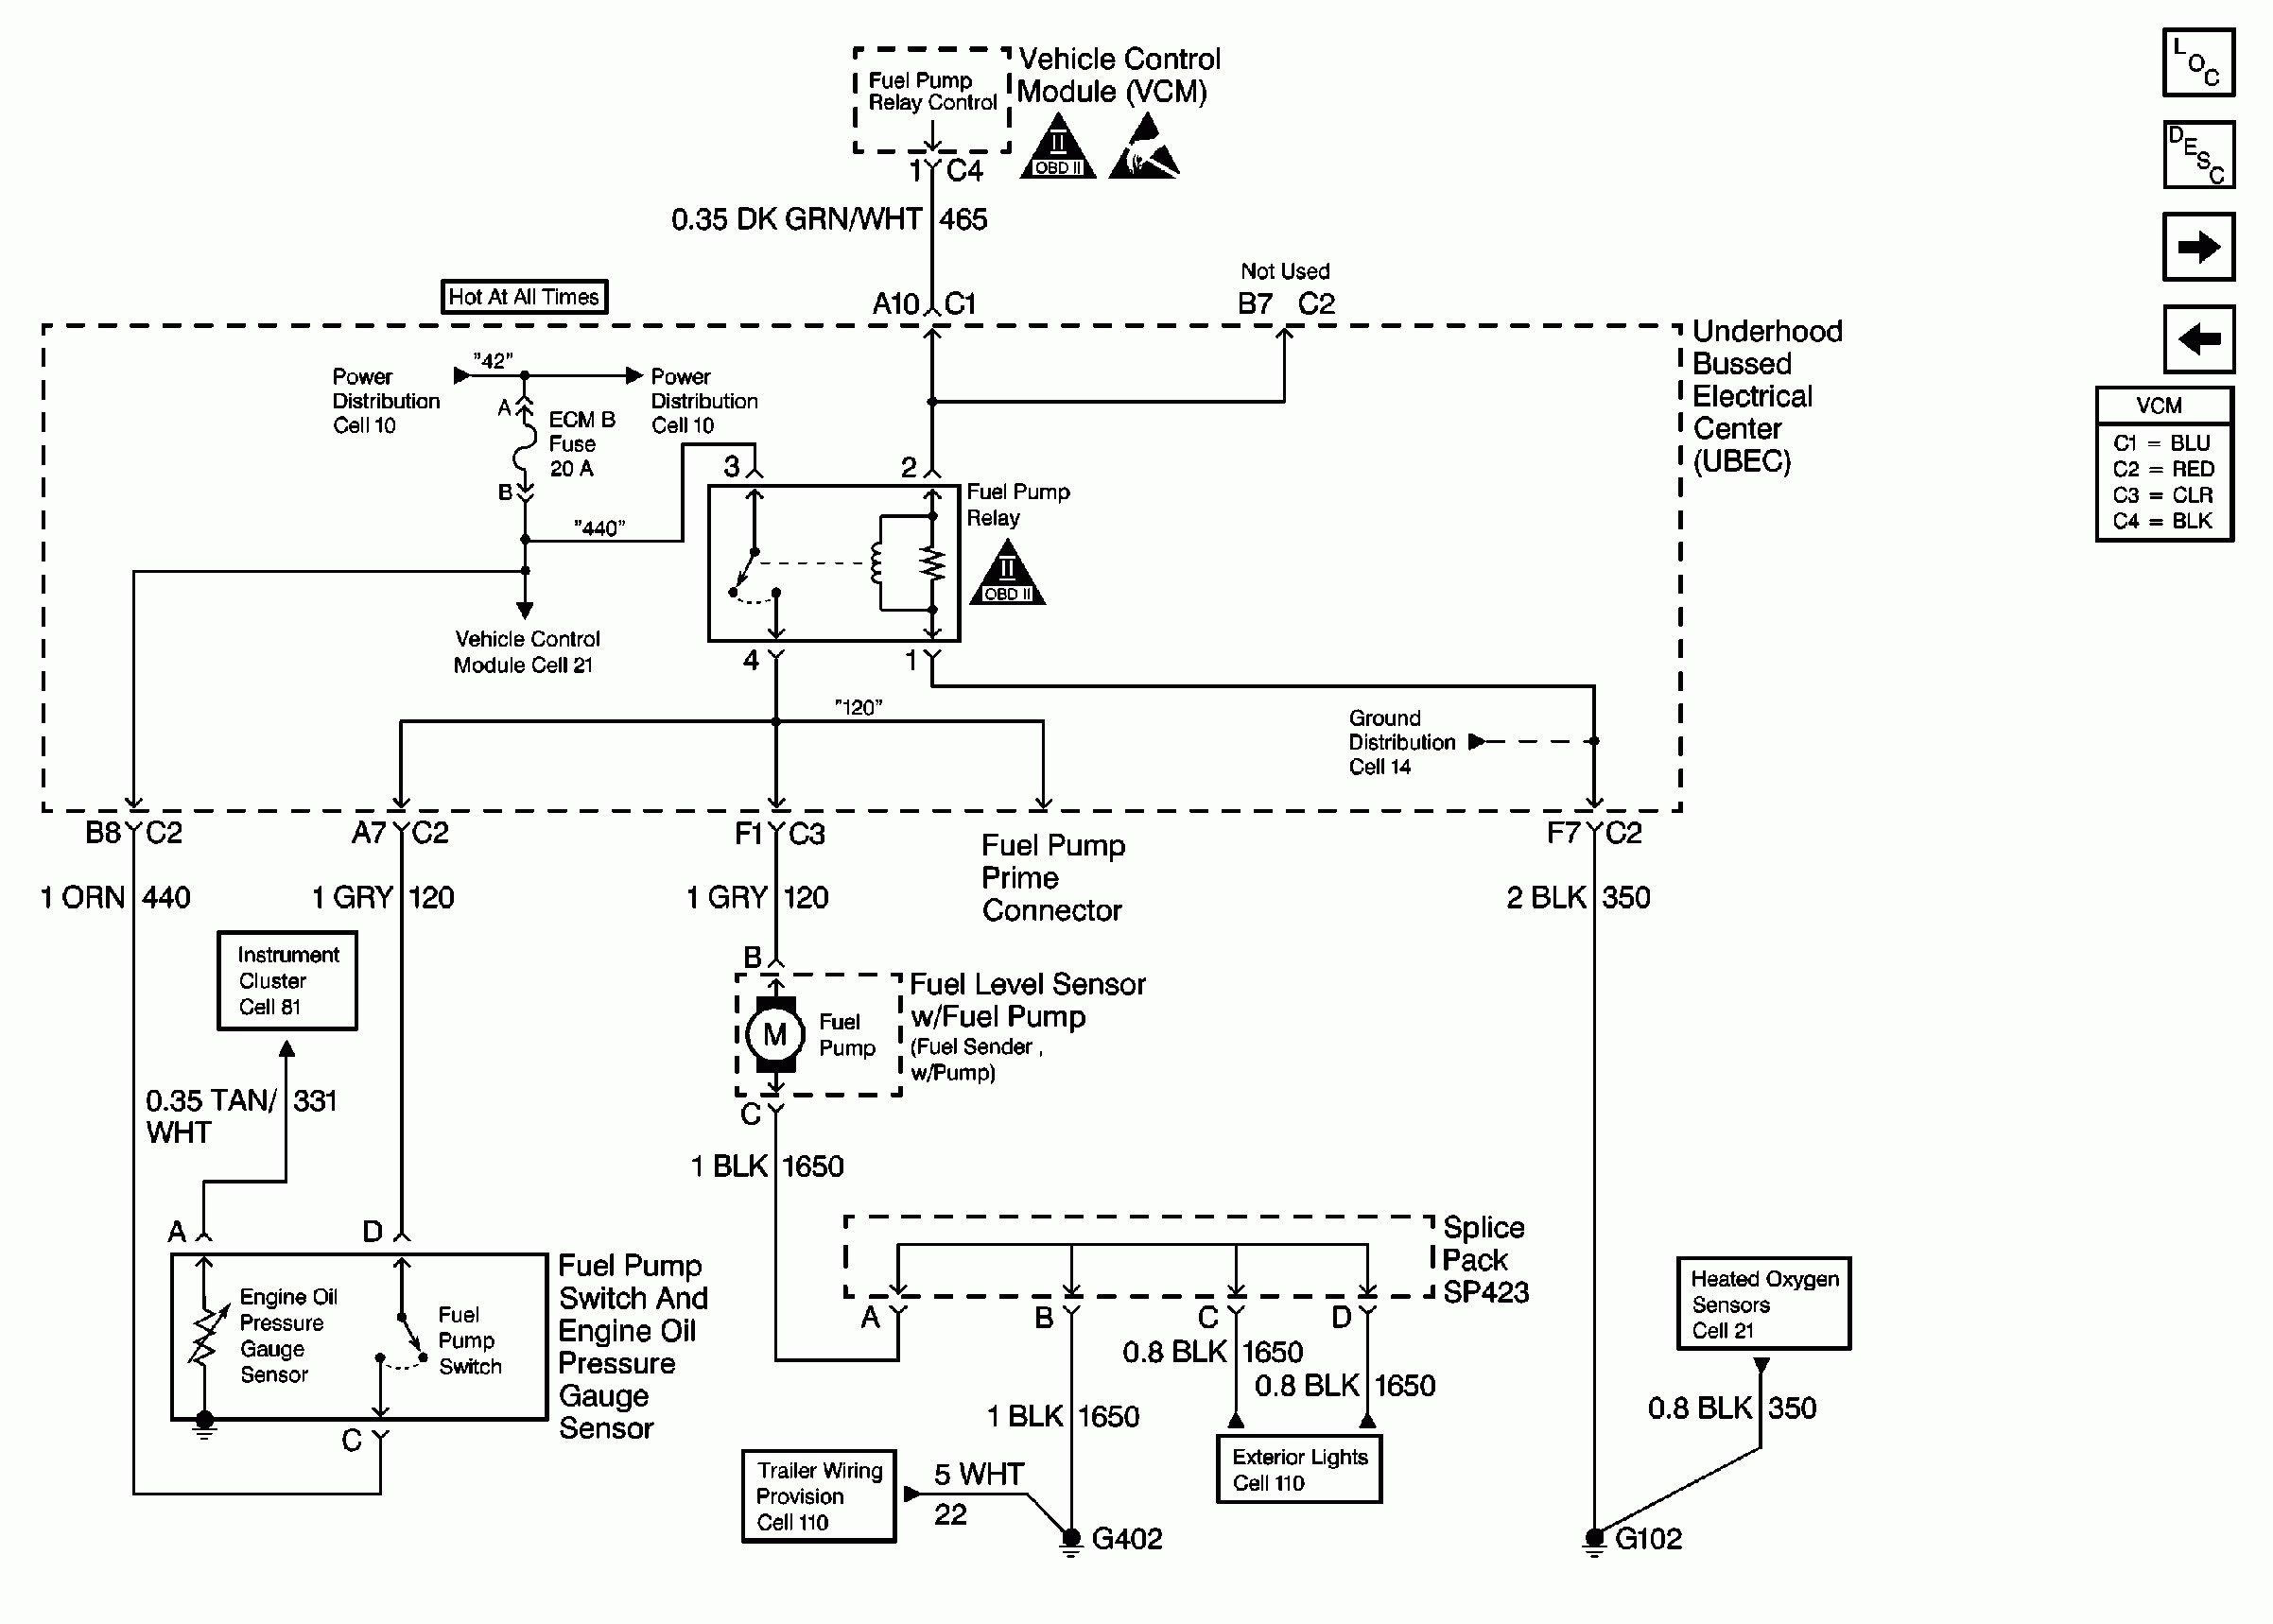 1993 s10 wiring diagram wiring diagram used 1993 s10 fuel pump wiring diagram [ 2404 x 1718 Pixel ]